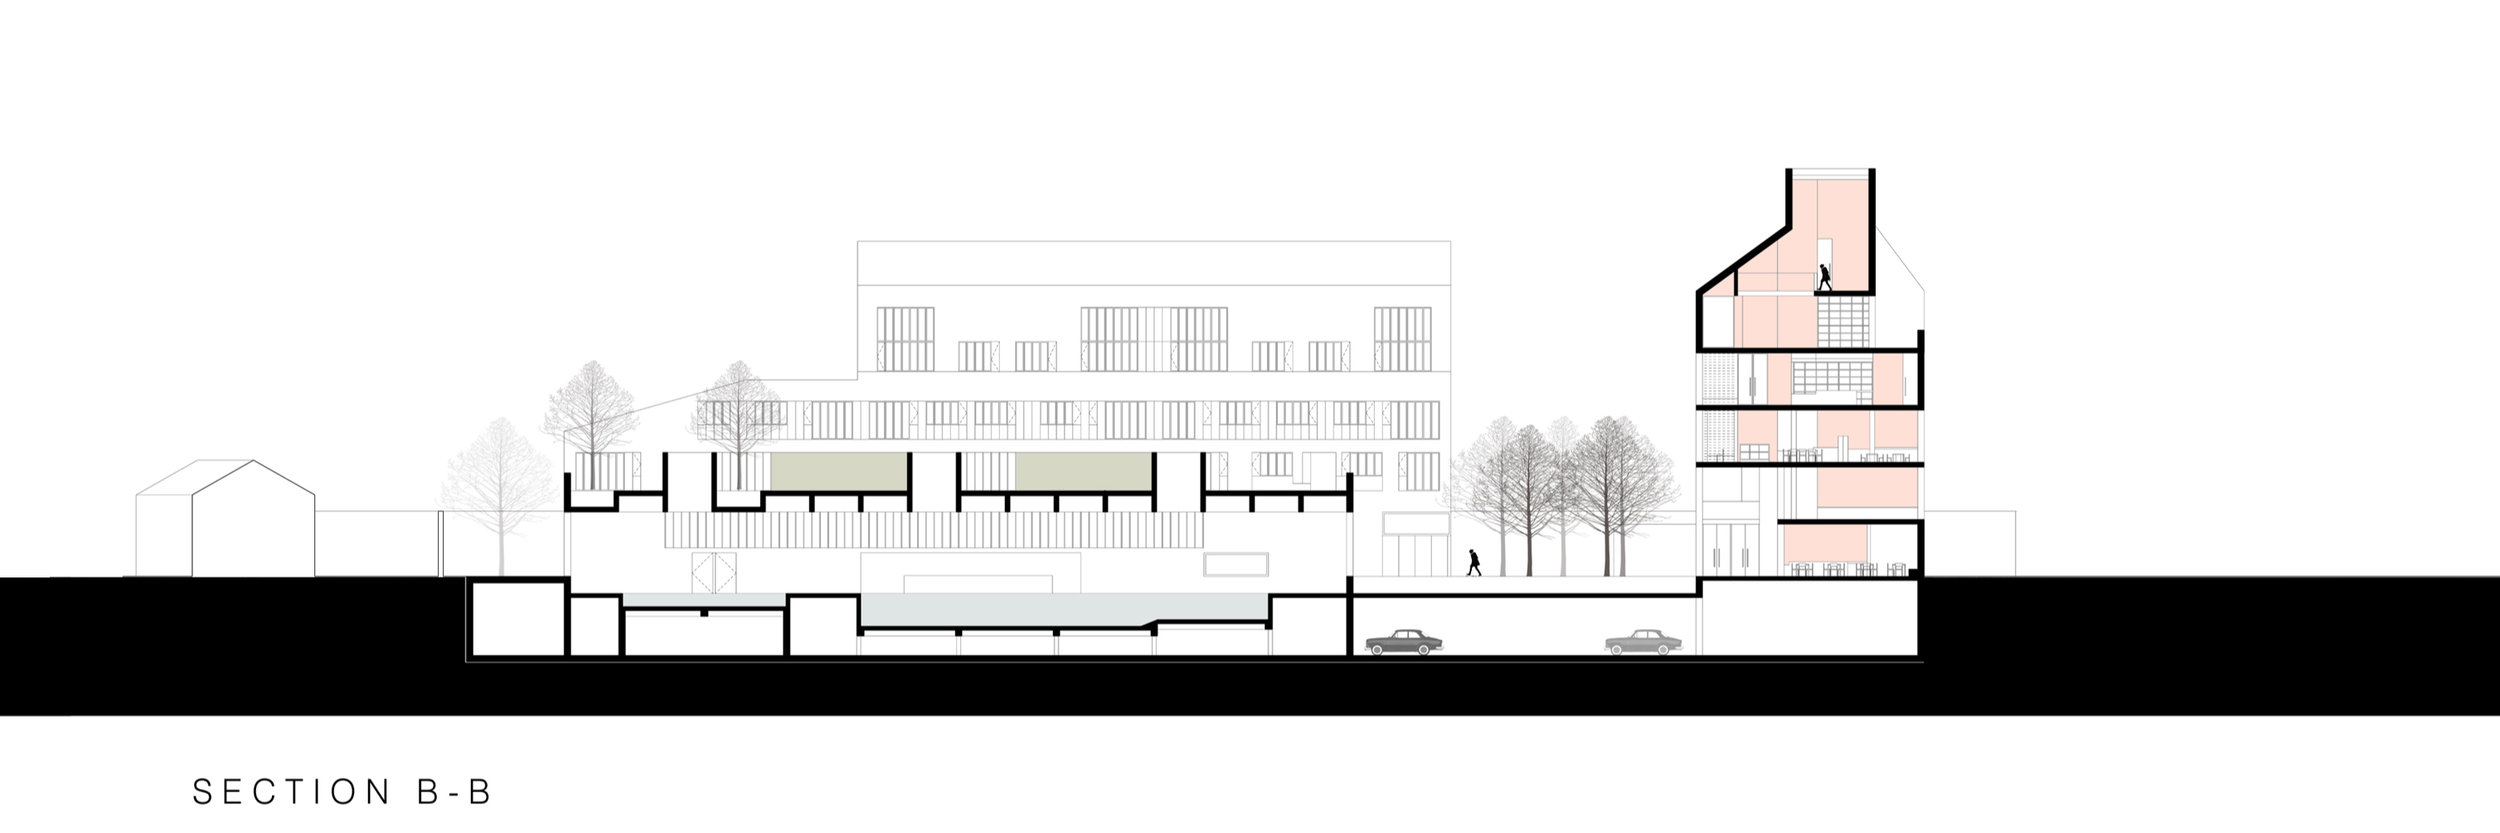 E11 Section BB.jpg